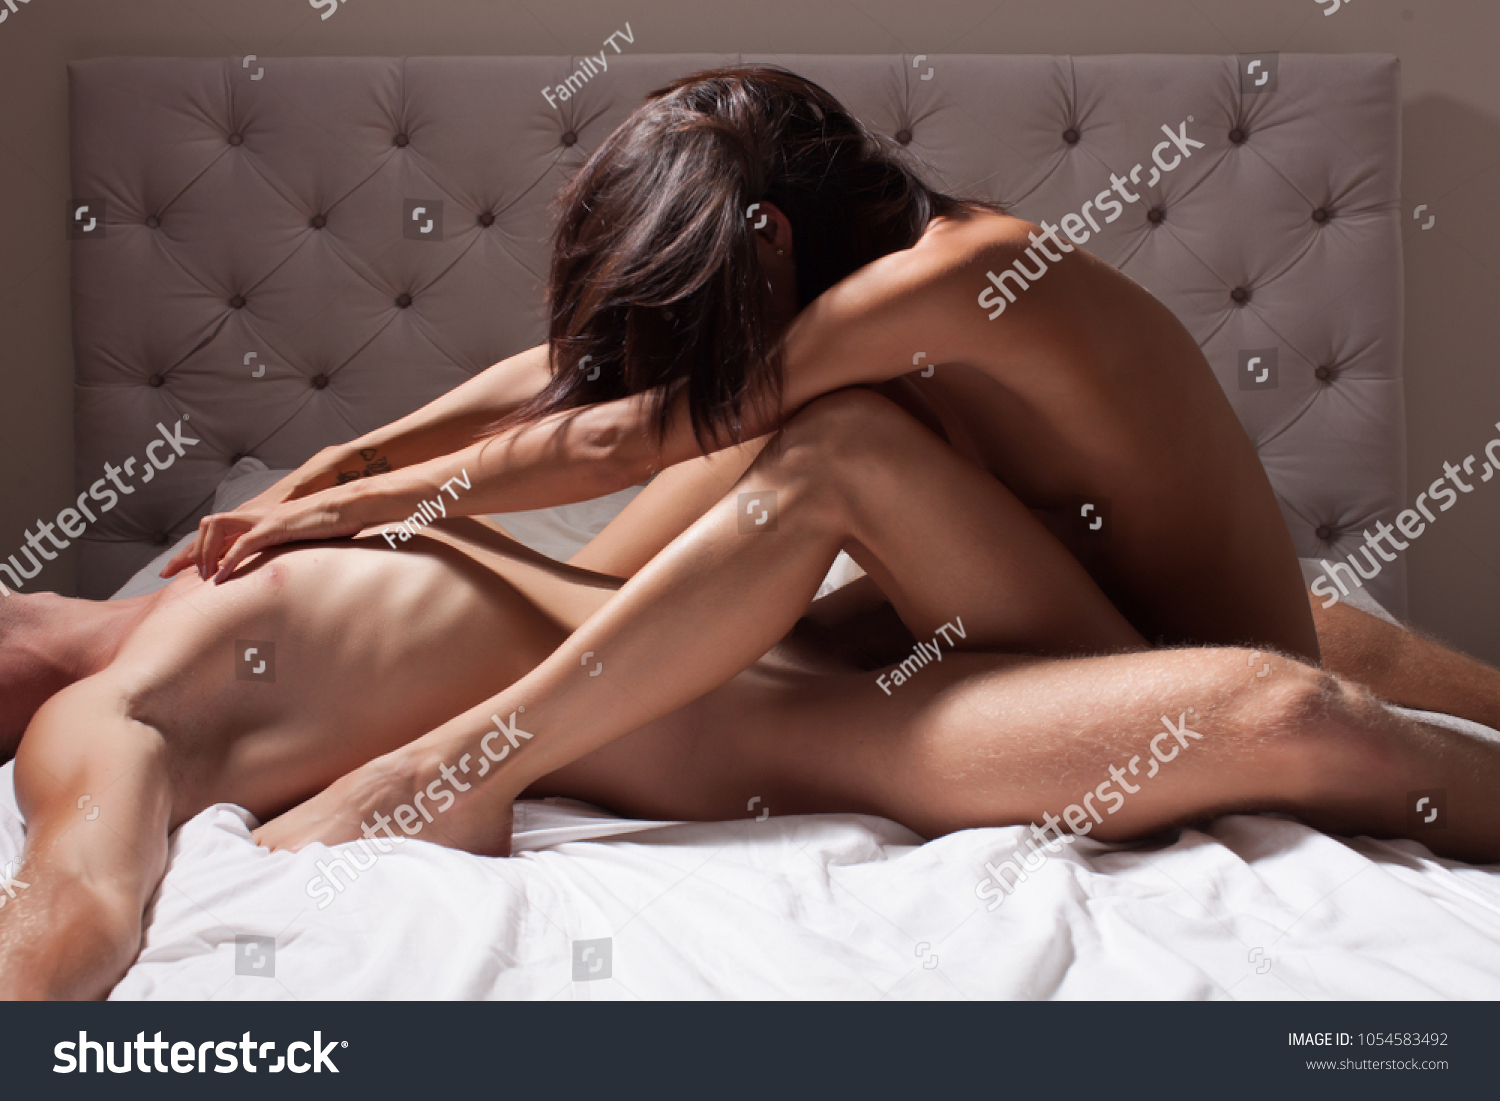 Pictures of girls having sex with other girls